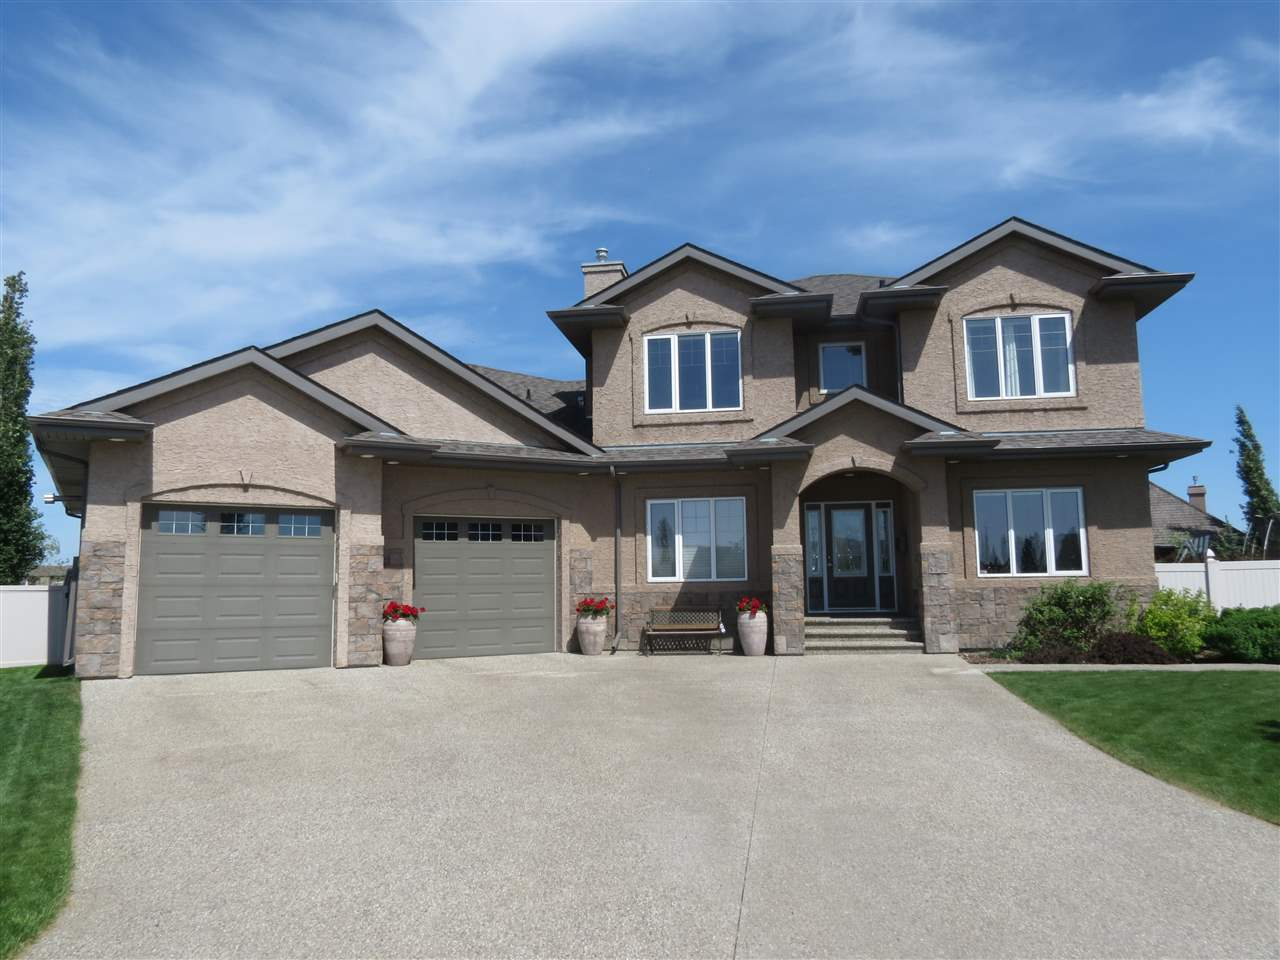 Main Photo: 9706 101 Avenue: Morinville House for sale : MLS(r) # E4052808